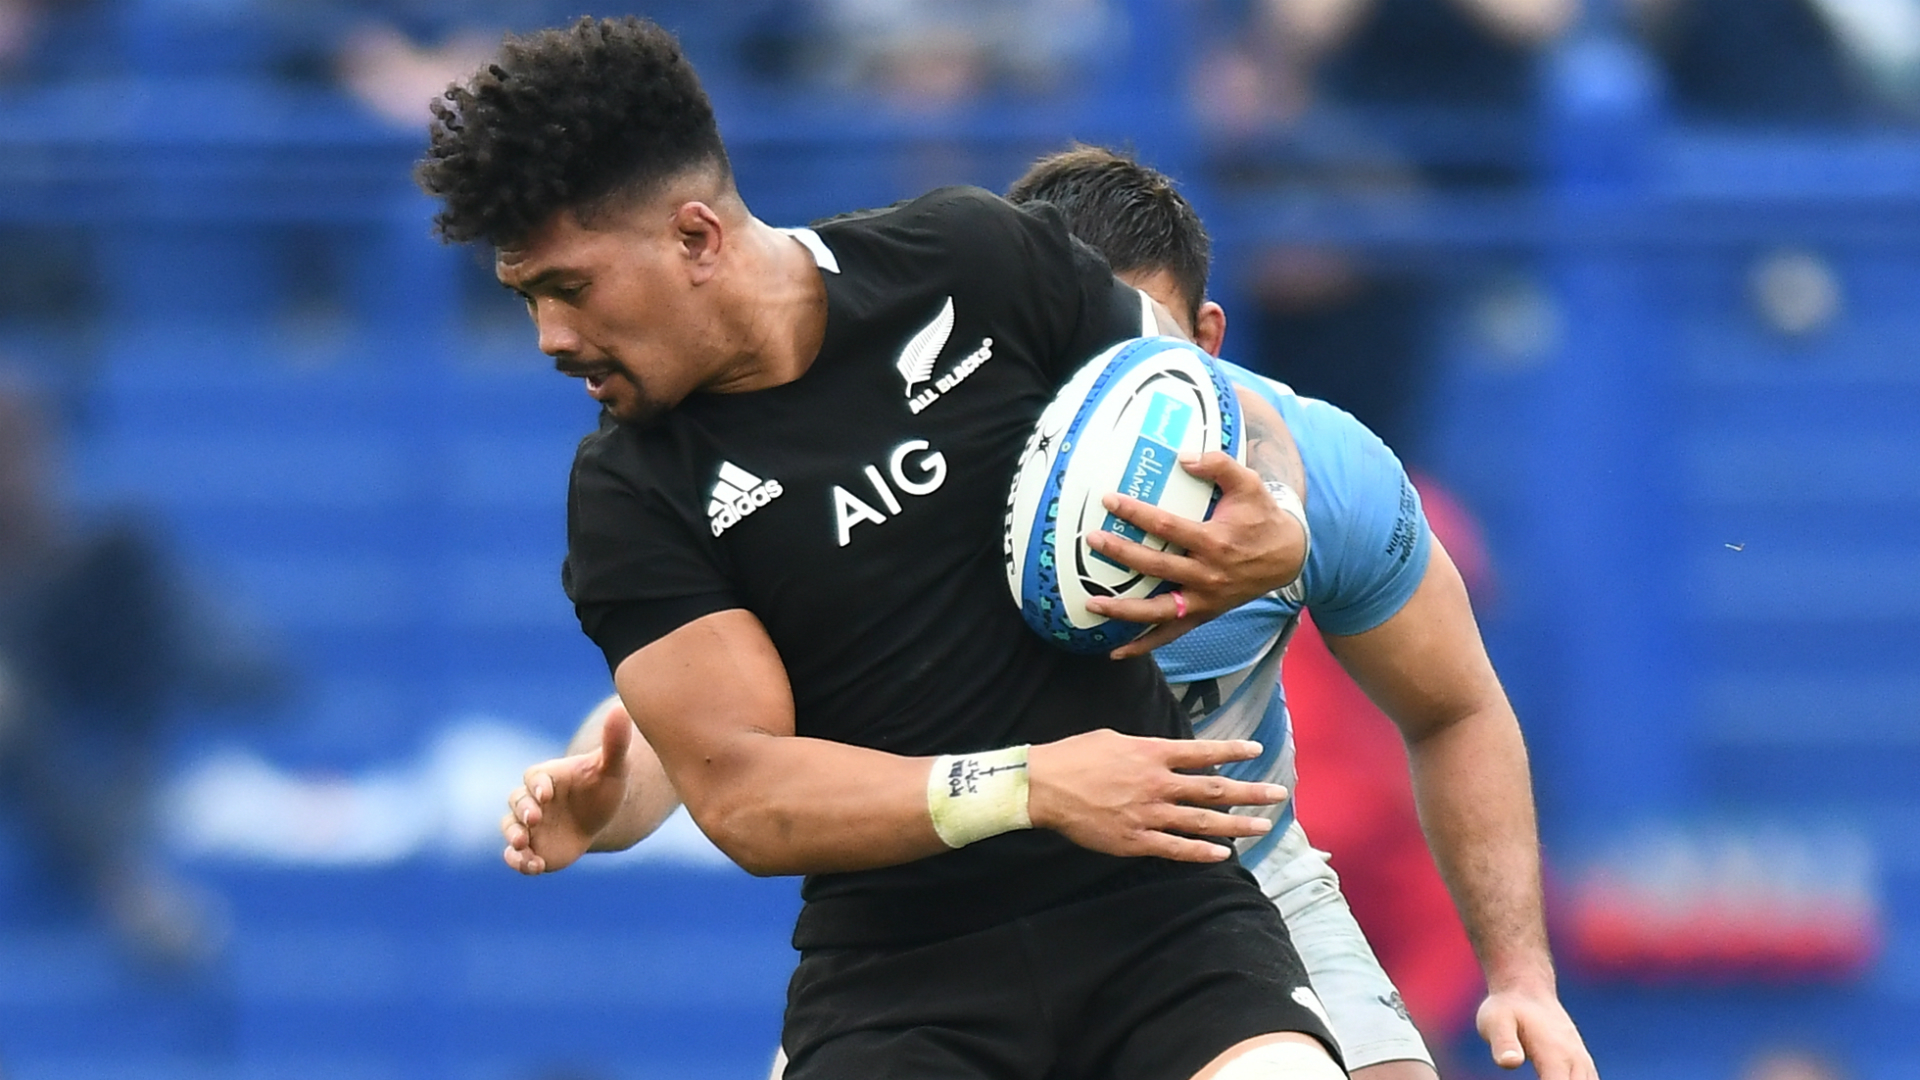 Argentina pushed New Zealand all the way in Buenos Aires, and All Blacks star Ardie Savea agreed the contest felt like war at times.